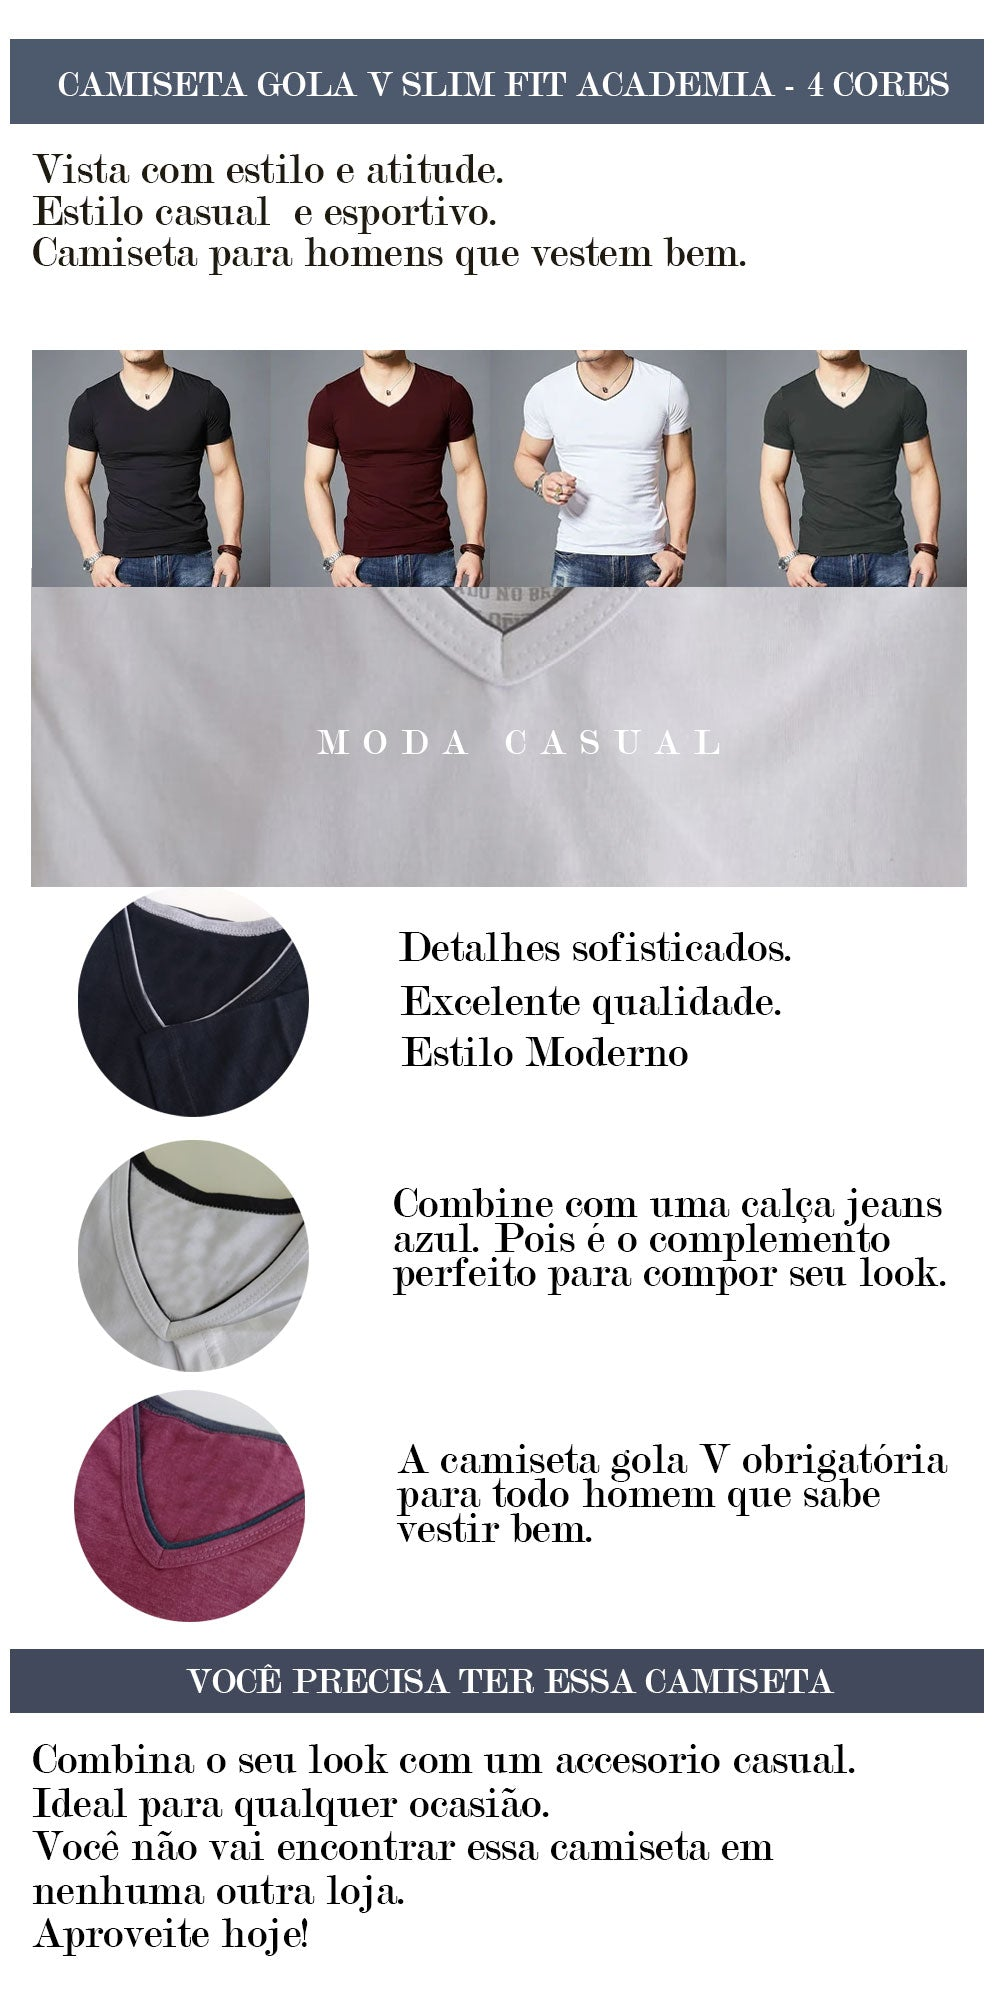 KIT 2 CAMISETAS GOLA V SLIM FIT ACADEMIA - 2 CORES